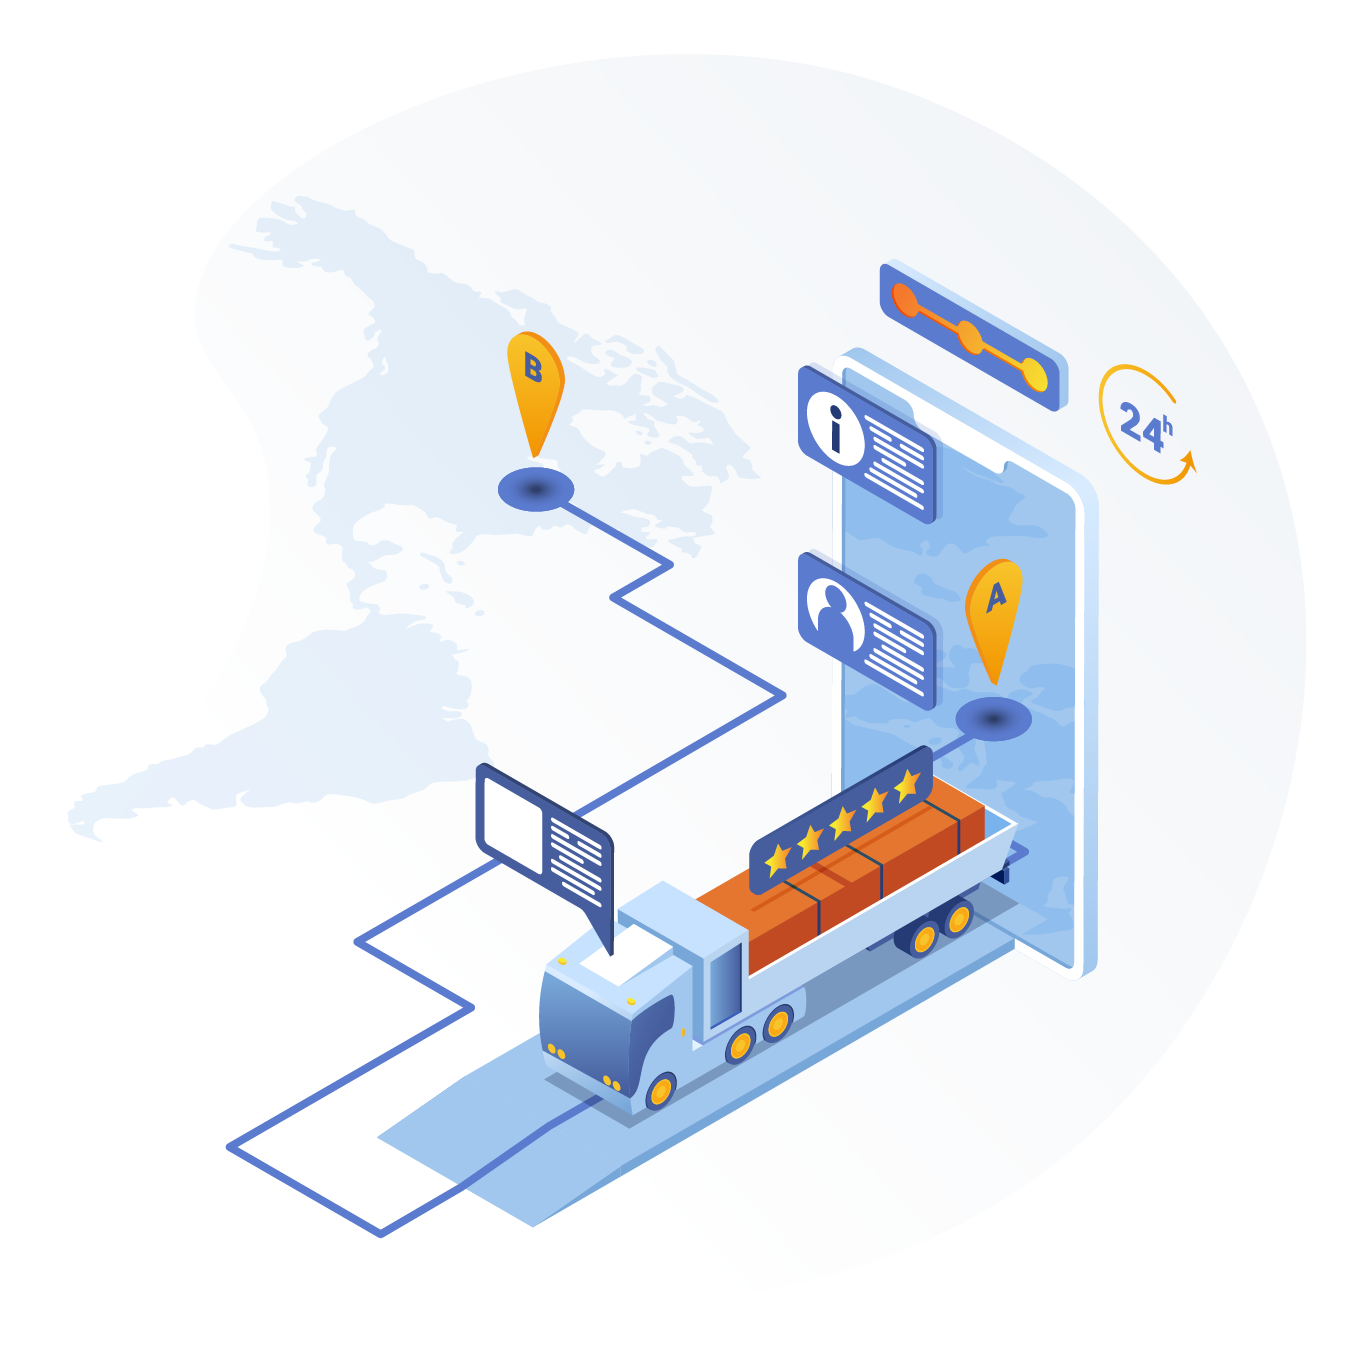 Our AI-Powered Logistics ChatBot features a proprietary combination of conversational AI, machine learning, natural language processing